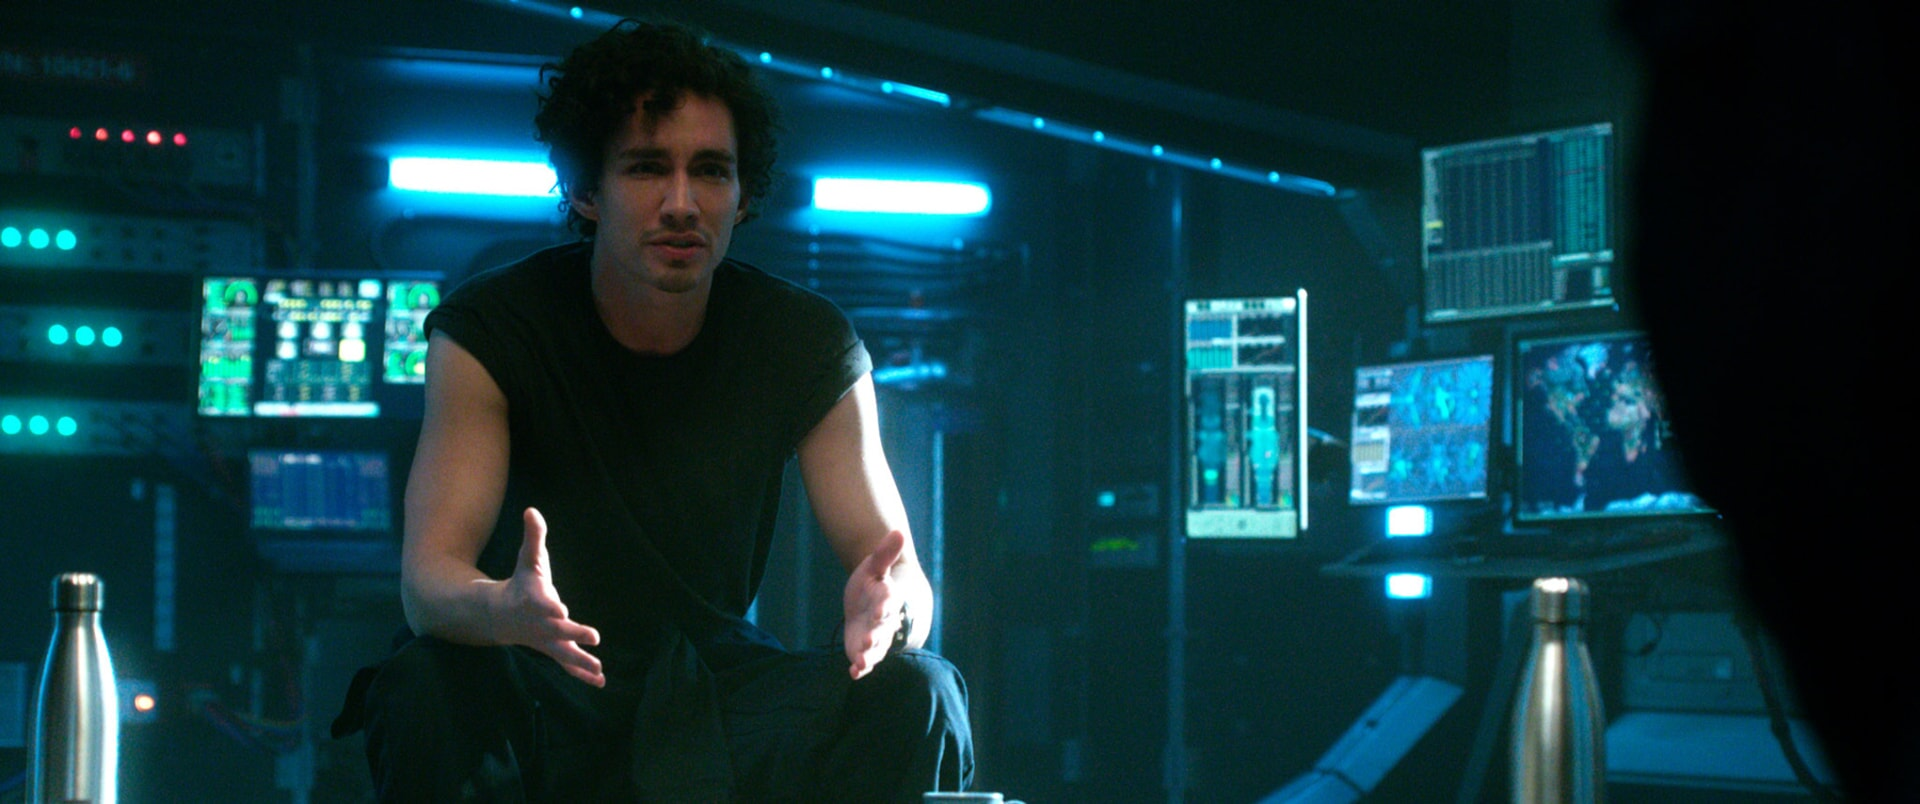 "ROBERT SHEEHAN as Duncan in Warner Bros. Pictures' and Skydance's suspense thriller ""GEOSTORM,"" a Warner Bros. Pictures release."